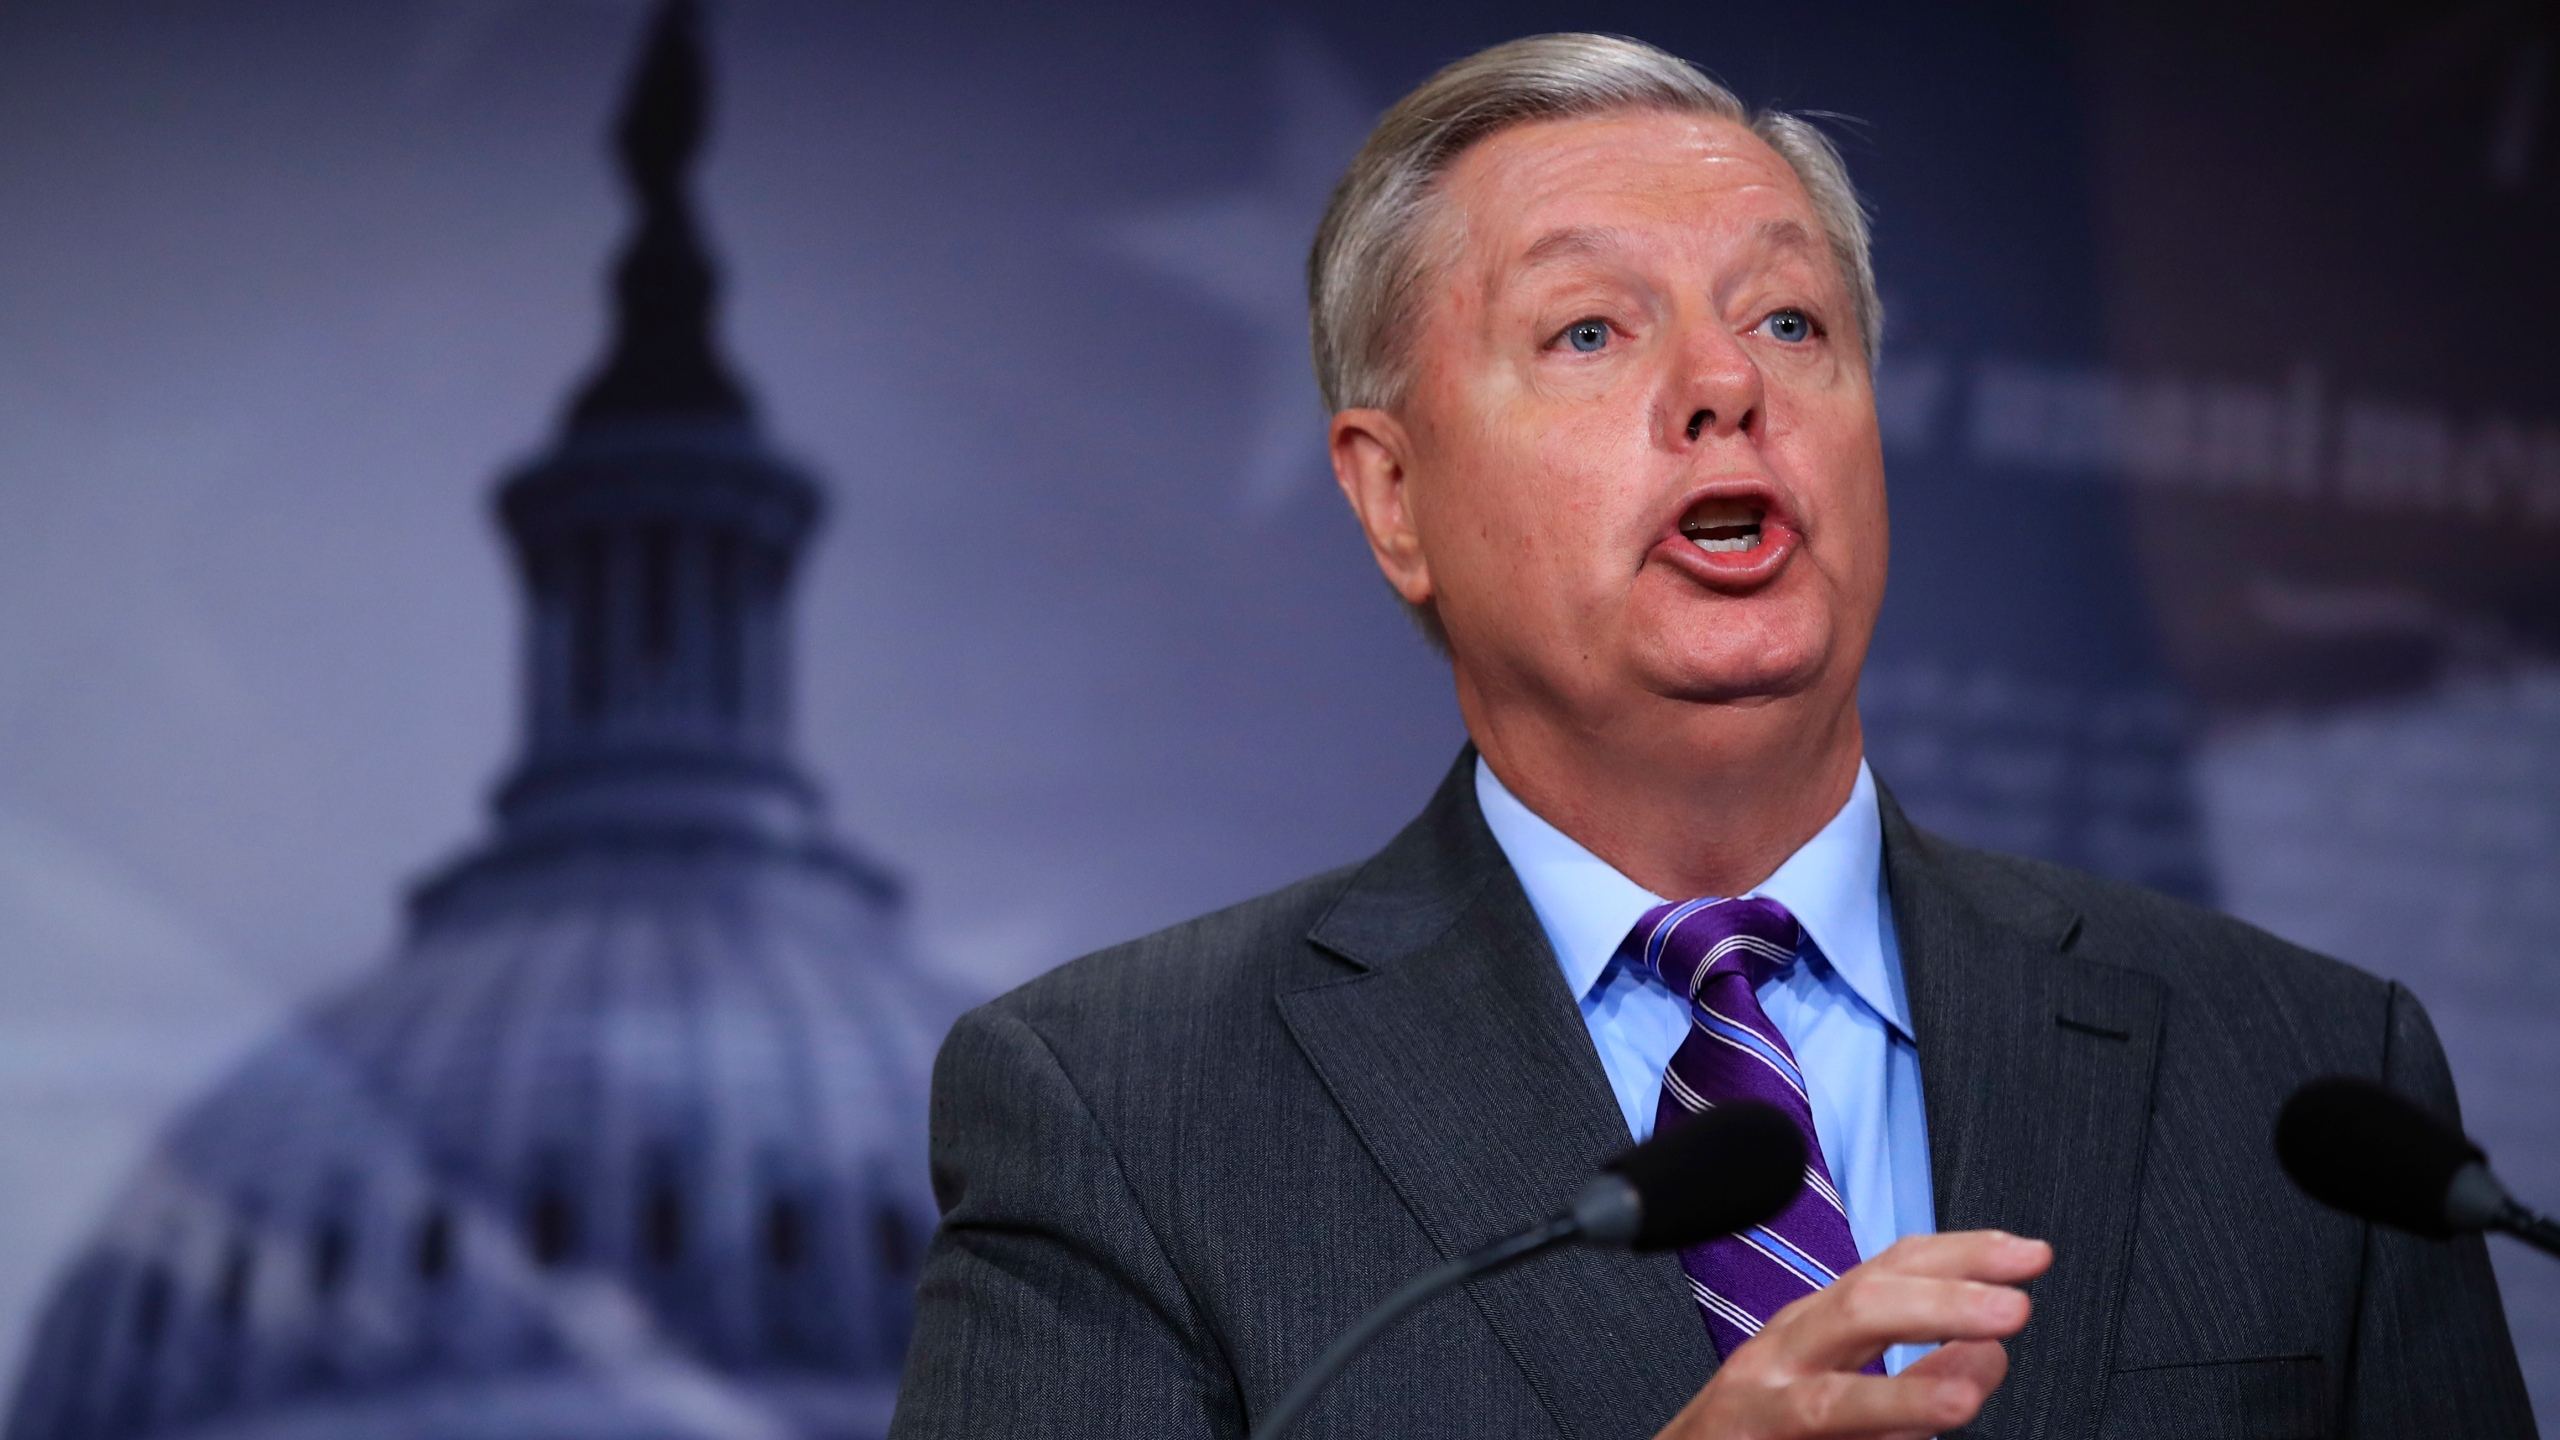 Trump_Lindsey_Graham_63754-159532.jpg12821266